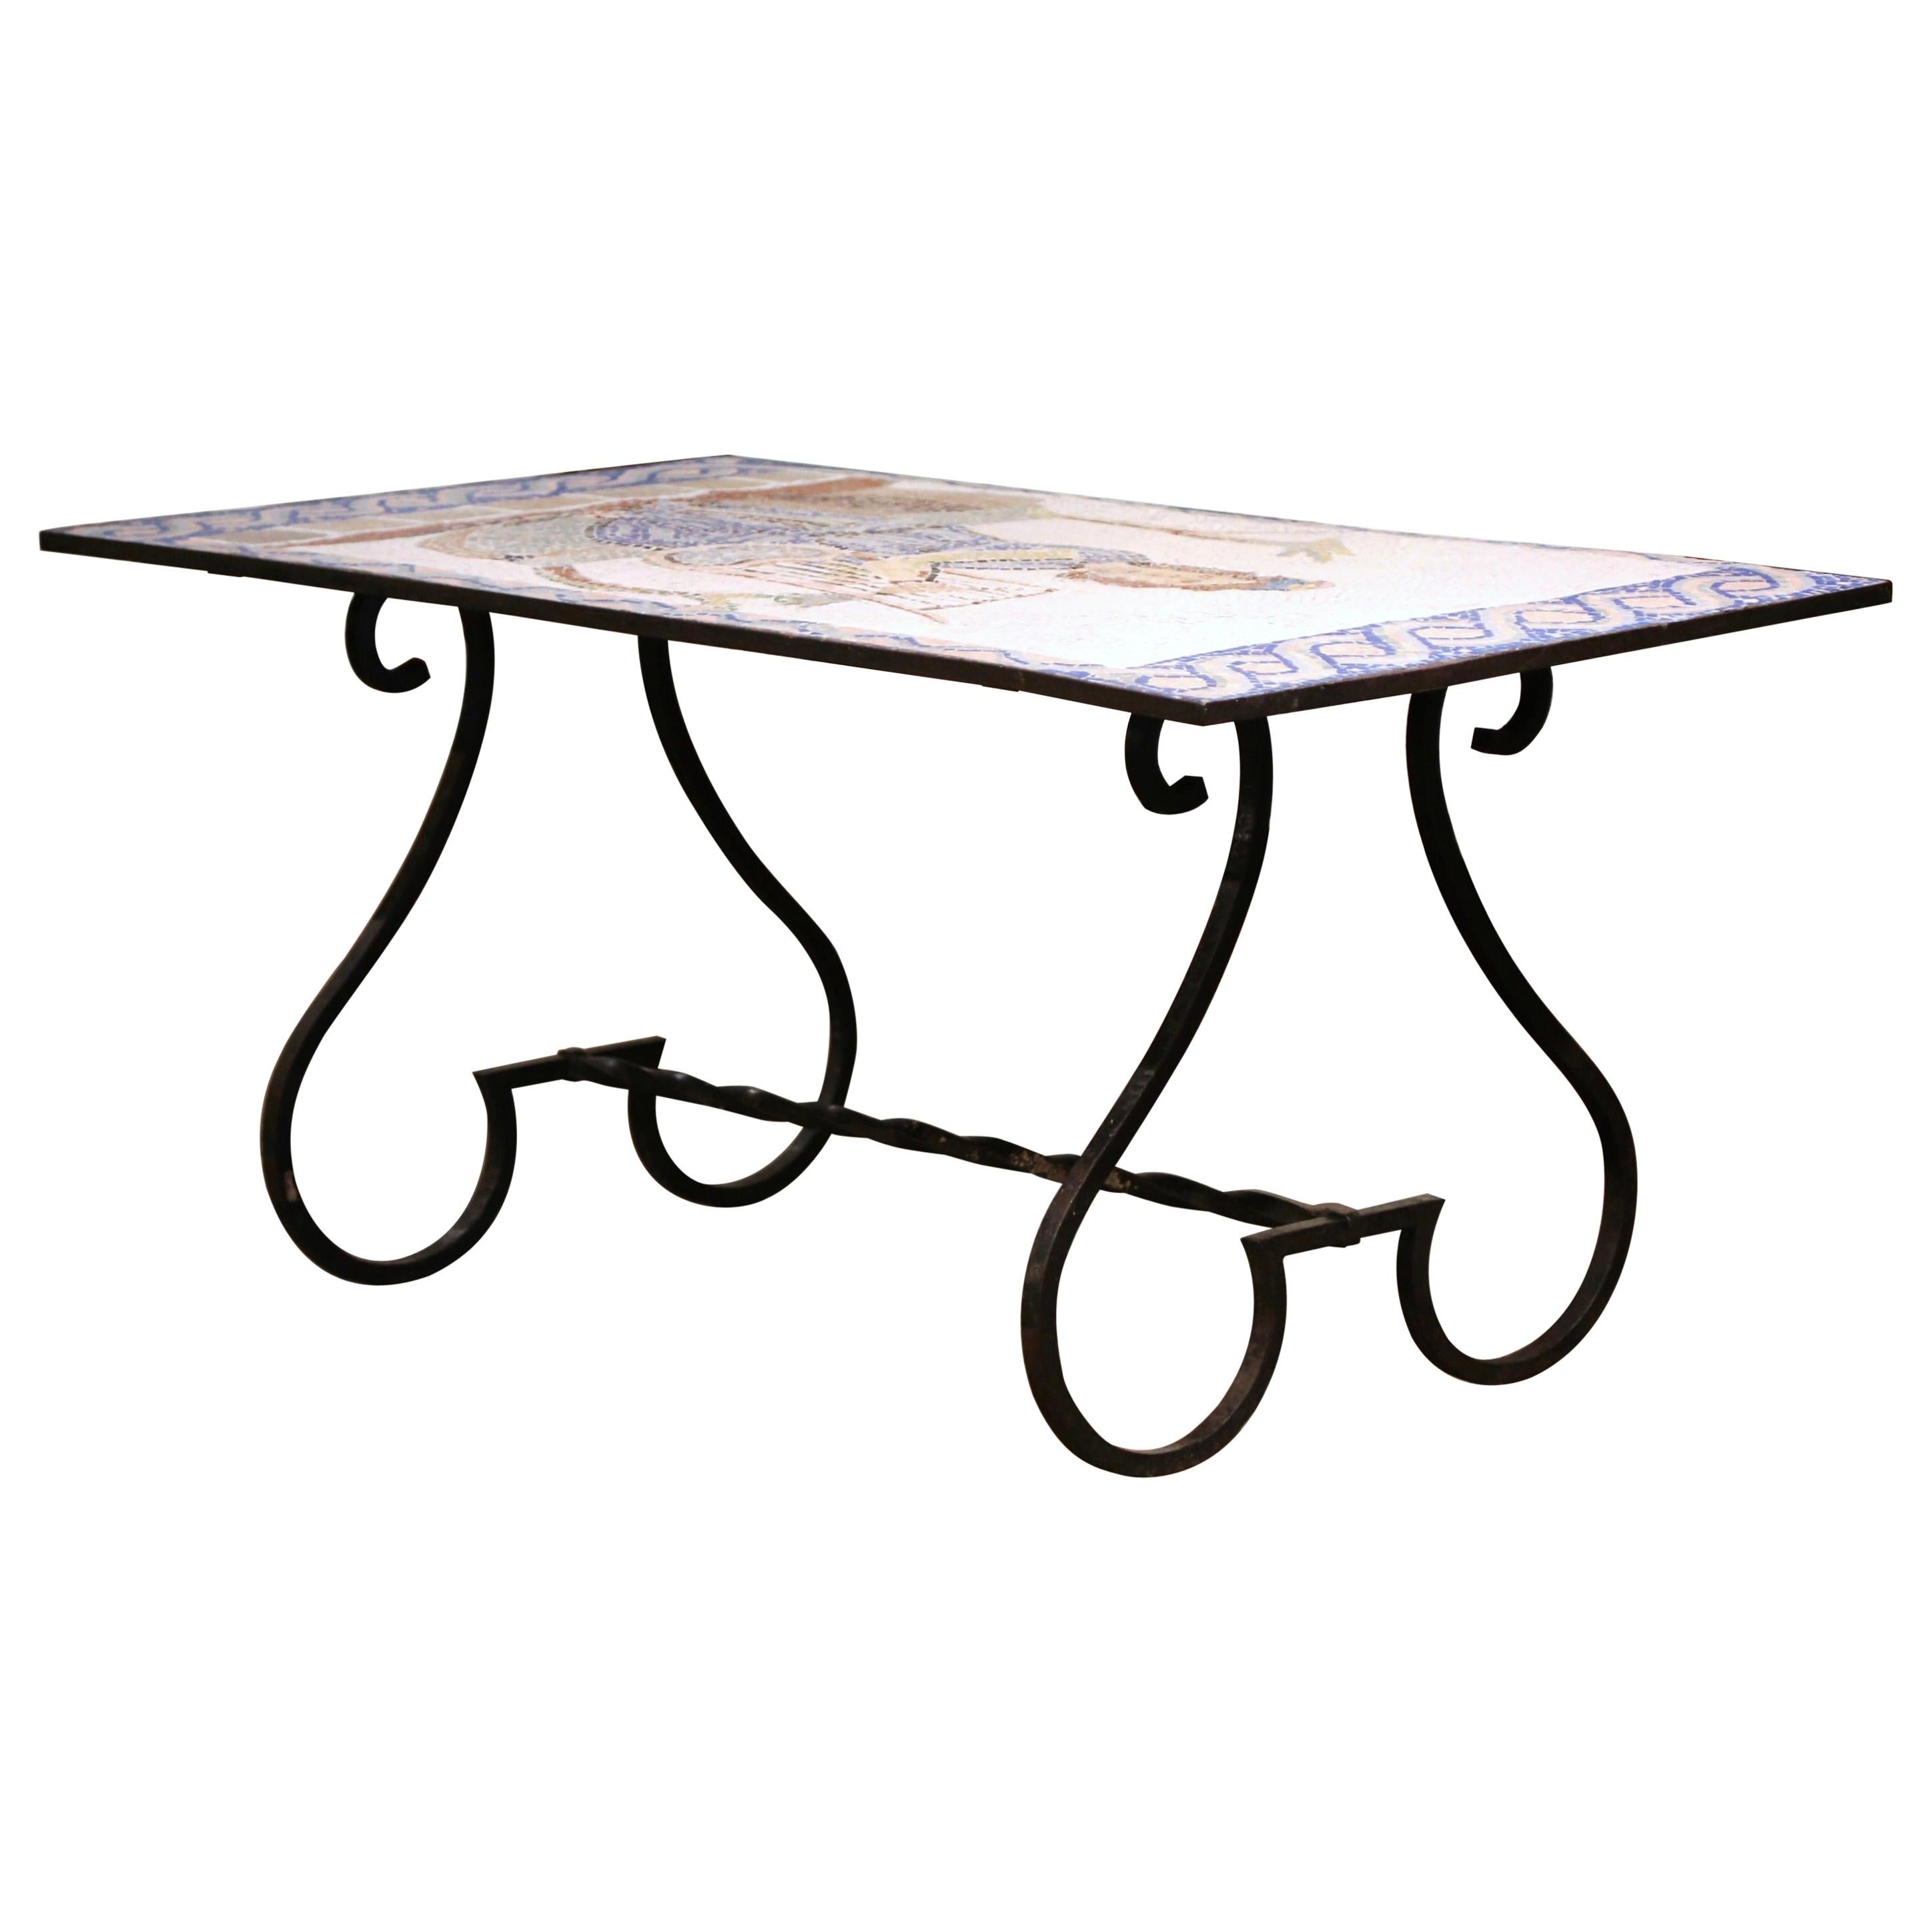 19th Century French Wrought Iron Outdoor Table with Ceramic Mosaic Top